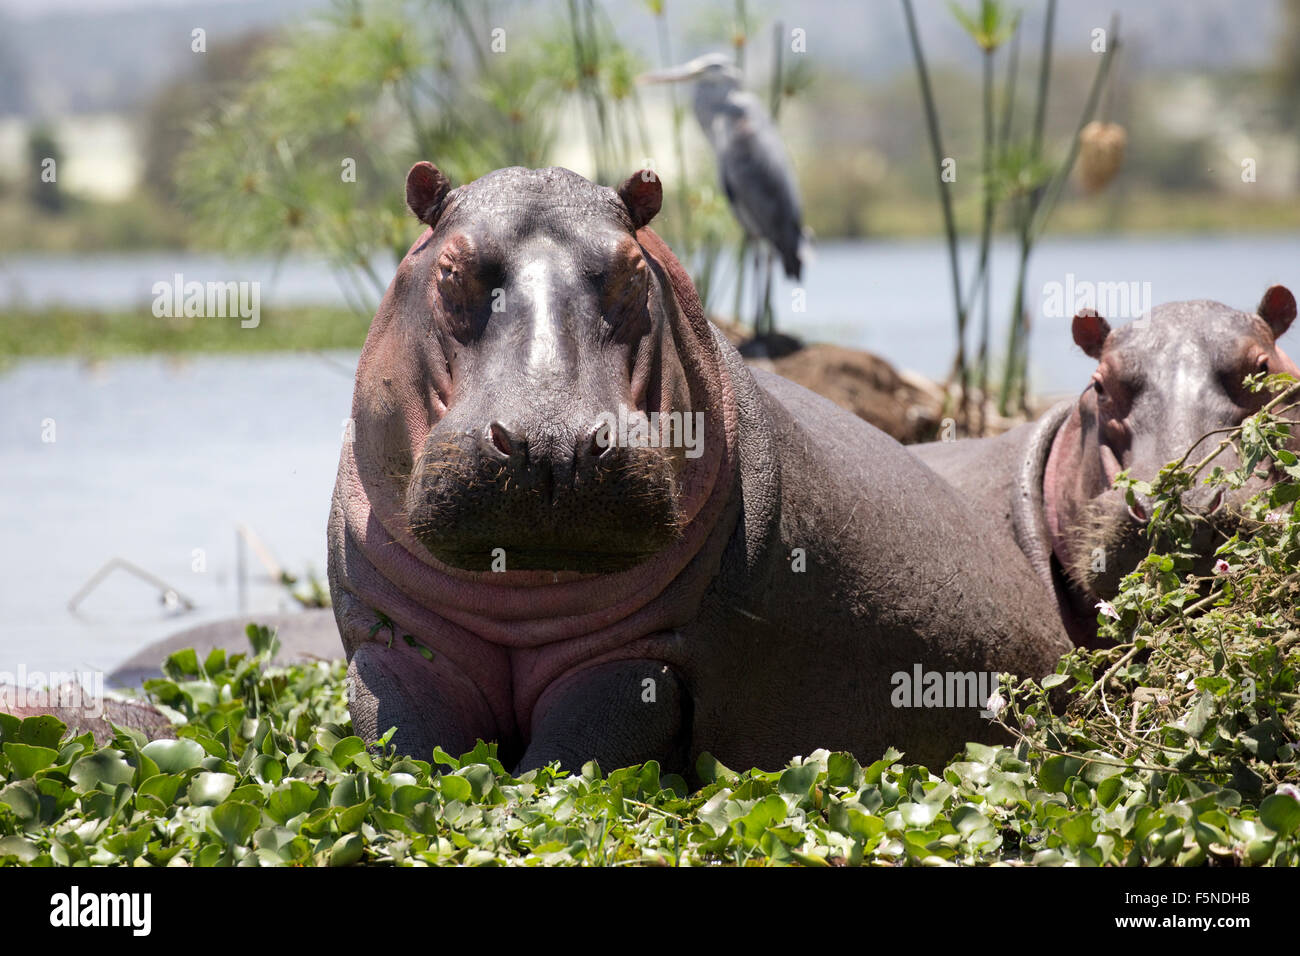 Hippopotamus amphibius half out of water surrounded by water hyacinth  with grey heron behind Lake Naivasha Kenya - Stock Image